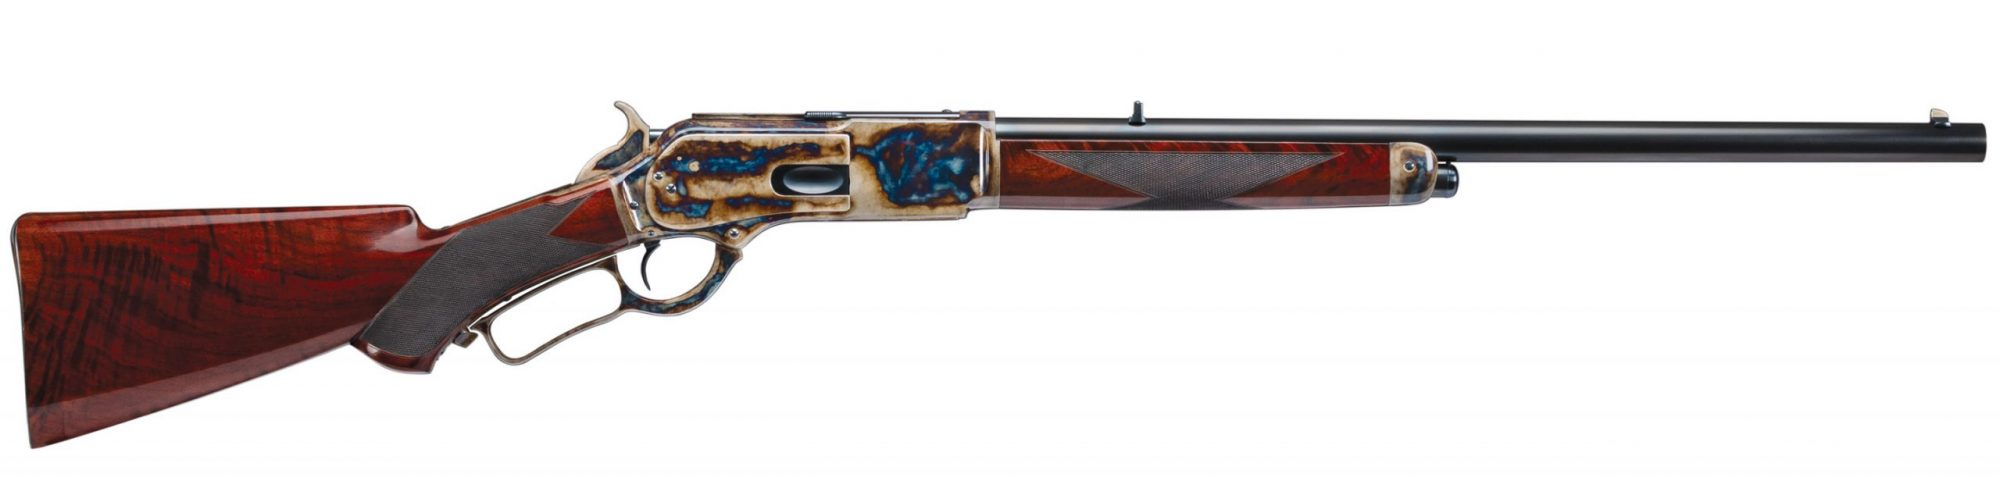 Photo of a restored Winchester 1876 Second Model from 1881, featuring bone charcoal color case hardening and other period-correct finishes, by Turnbull Restoration of Bloomfield, NY